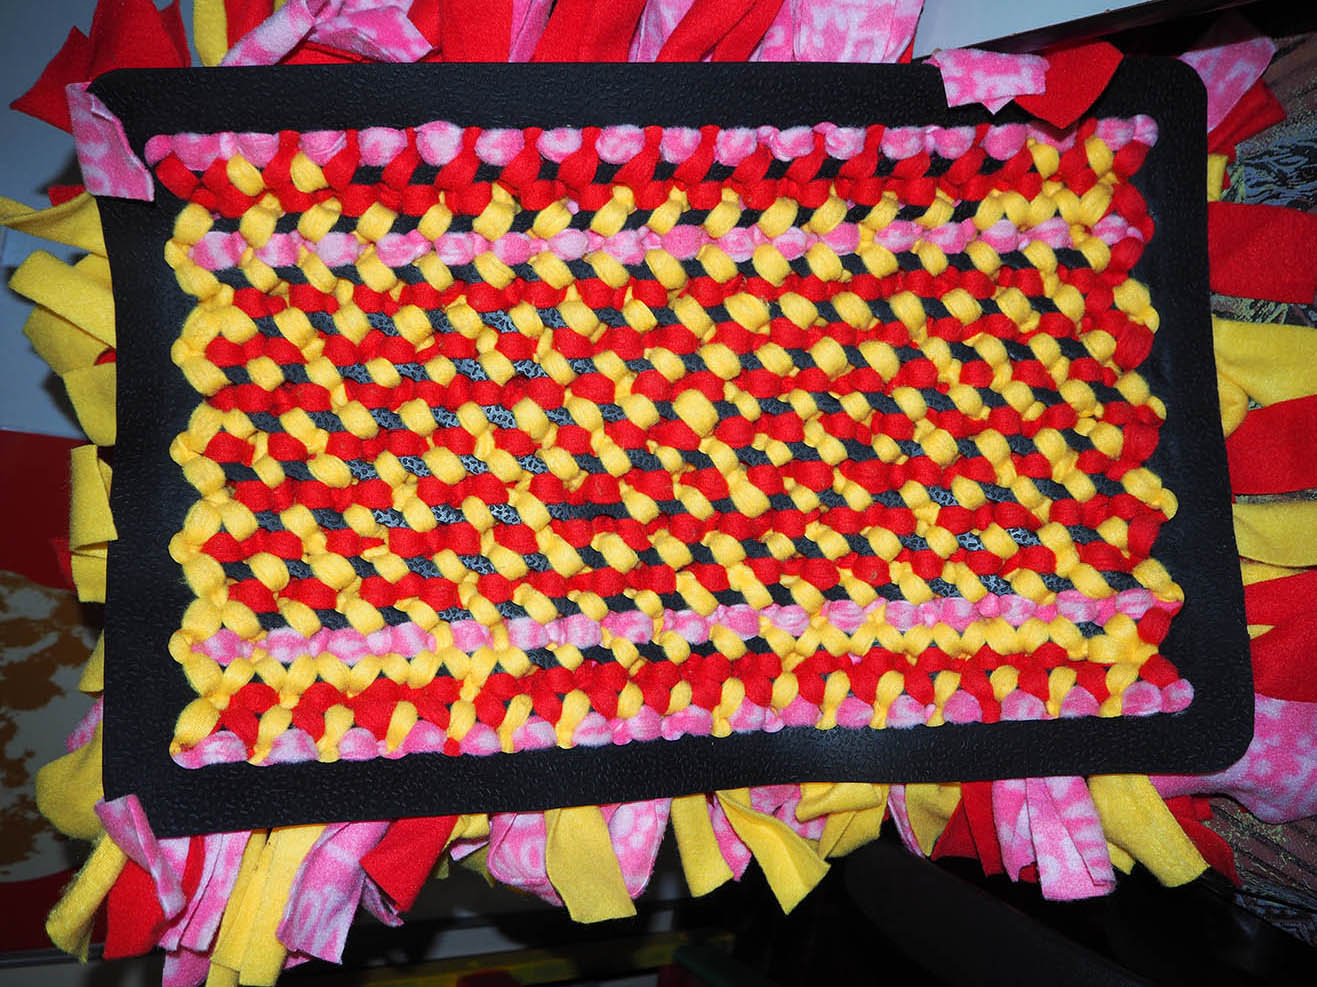 Snuffle mat - back view